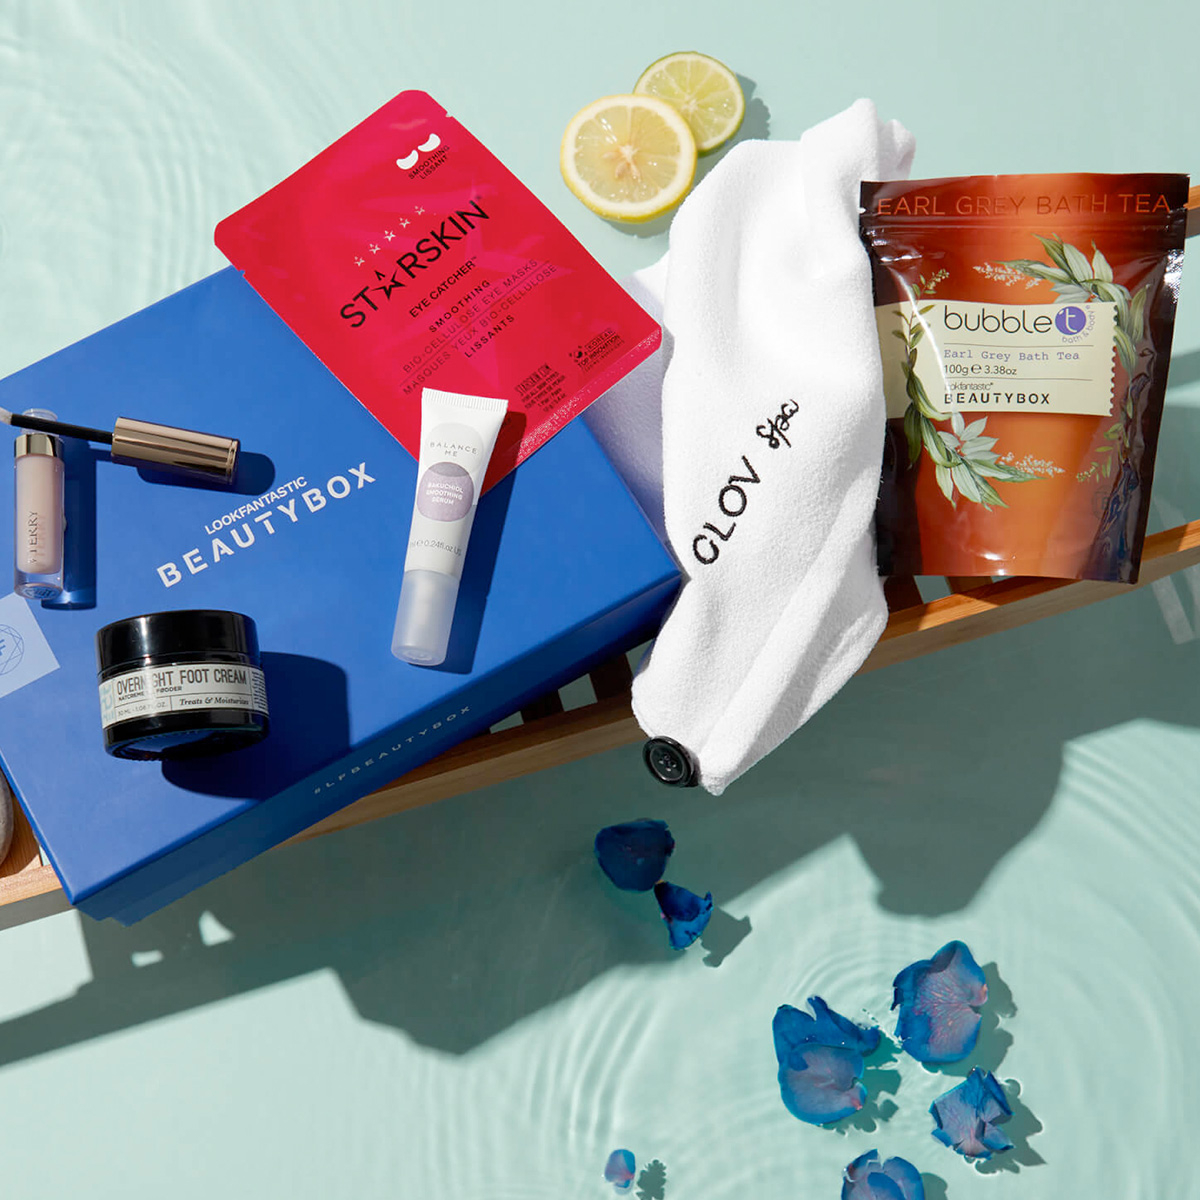 Lookfantastic's $16 Beauty Box Deal Tops Most Prime Day Offers